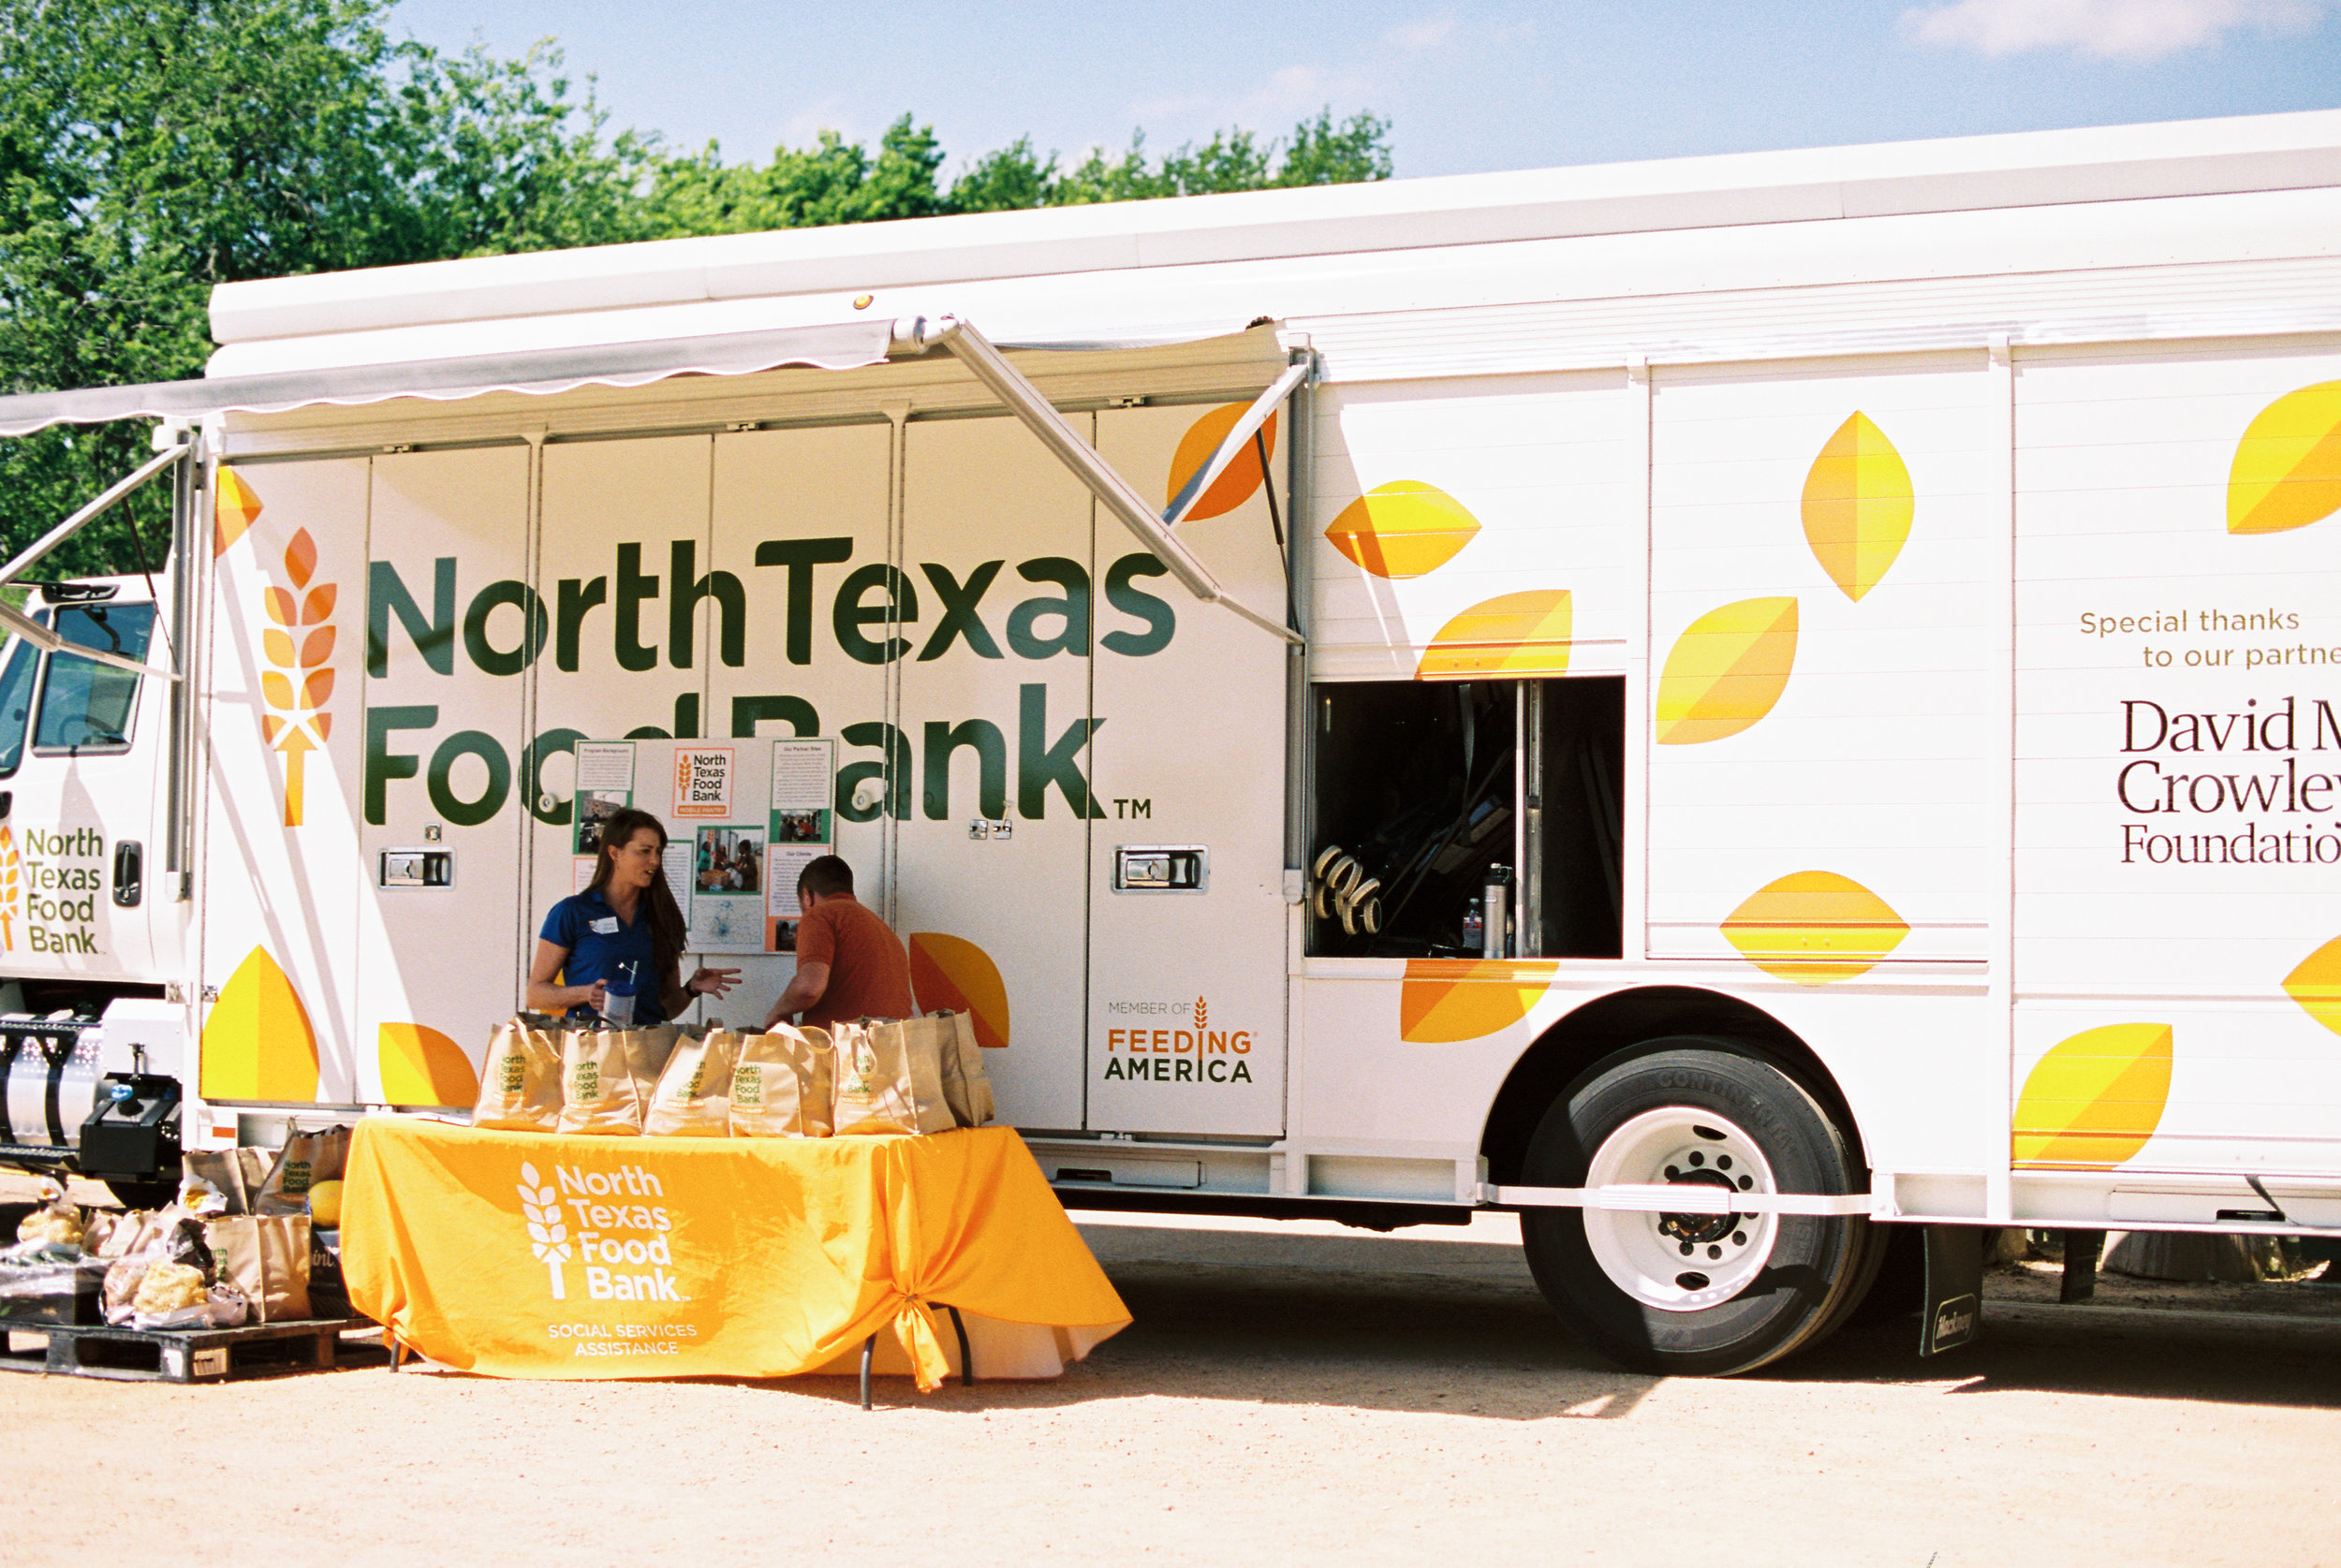 parker-texas-north-texas-food-bank-ar-photography-38.jpg